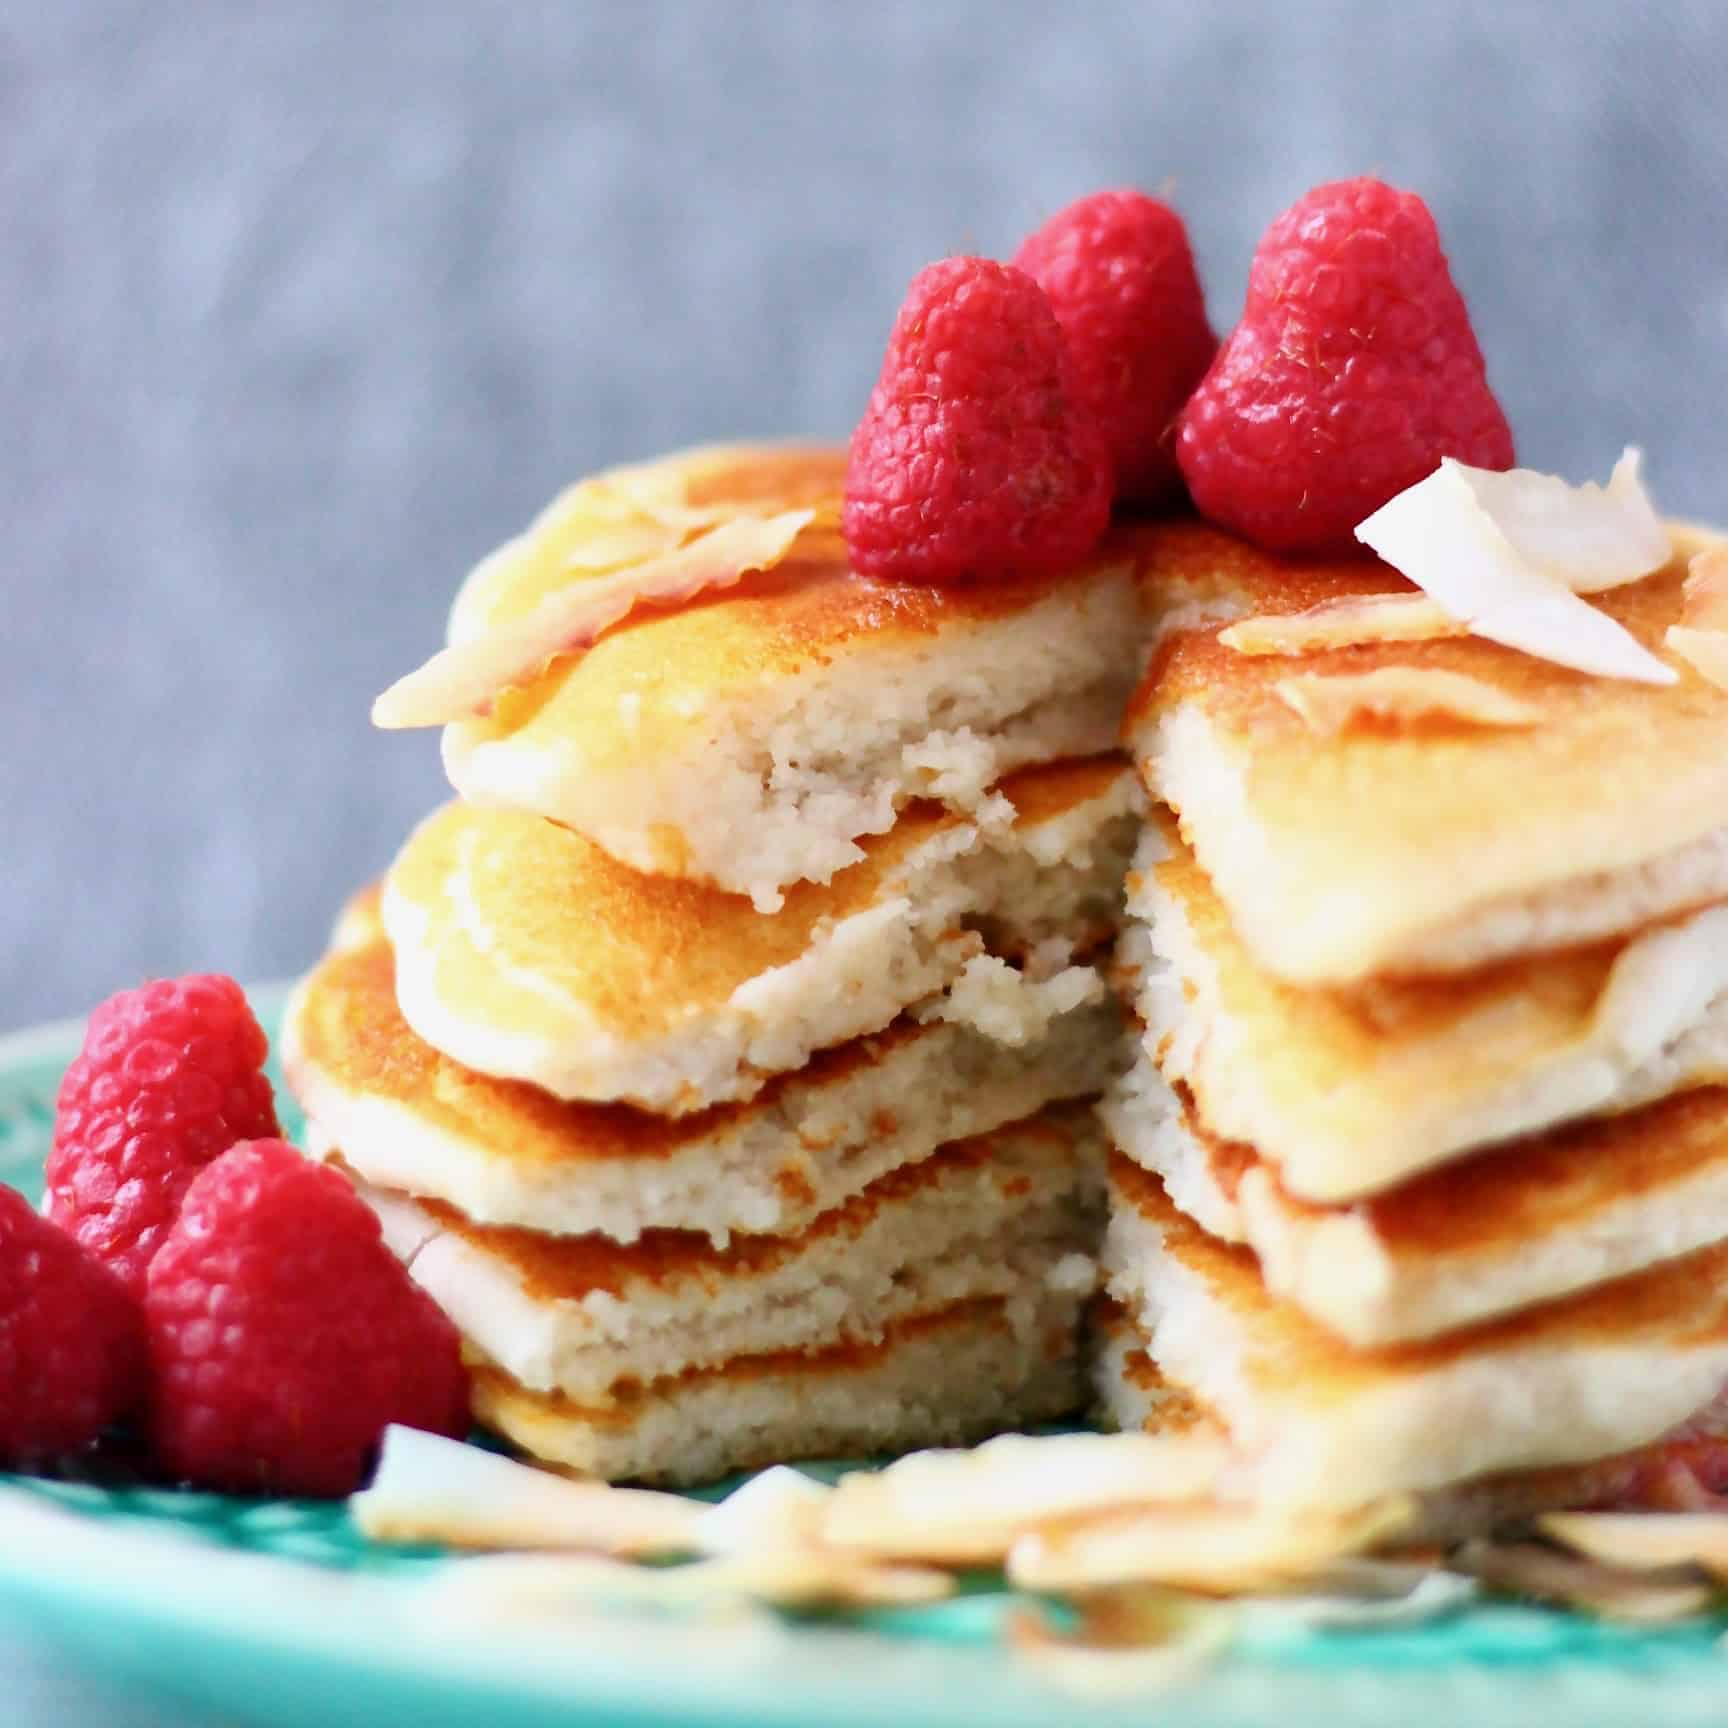 Five coconut flour pancakes stacked in a pile decorated with fresh raspberries and coconut flakes on a green plate against a grey background